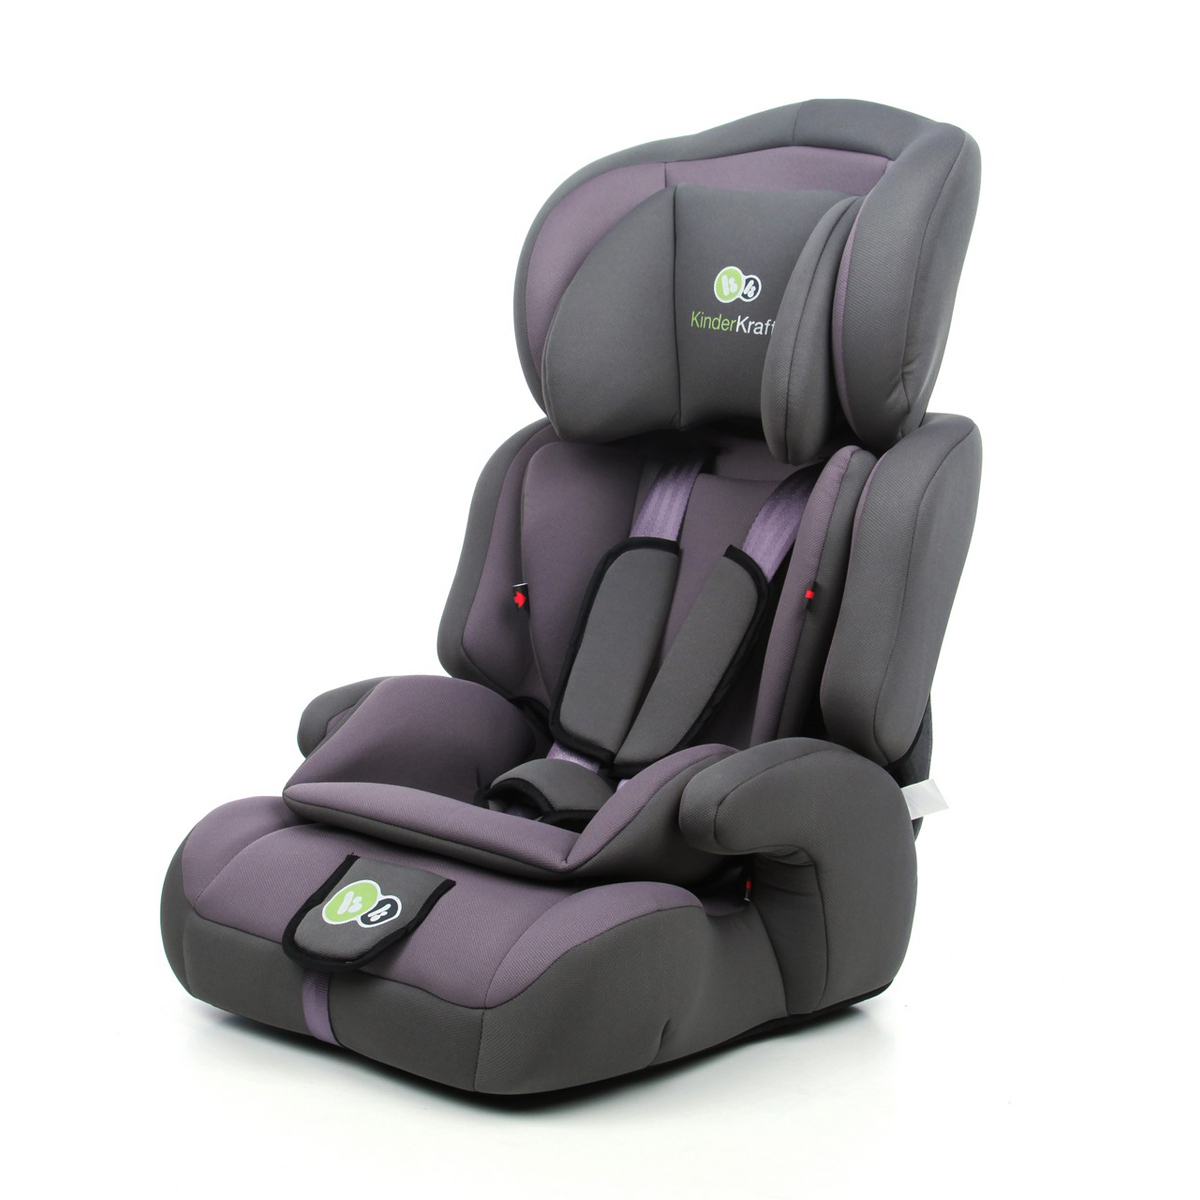 autokindersitz kinderautositz autositz kindersitz gruppe 1 2 3 9 36 comfort grau ebay. Black Bedroom Furniture Sets. Home Design Ideas